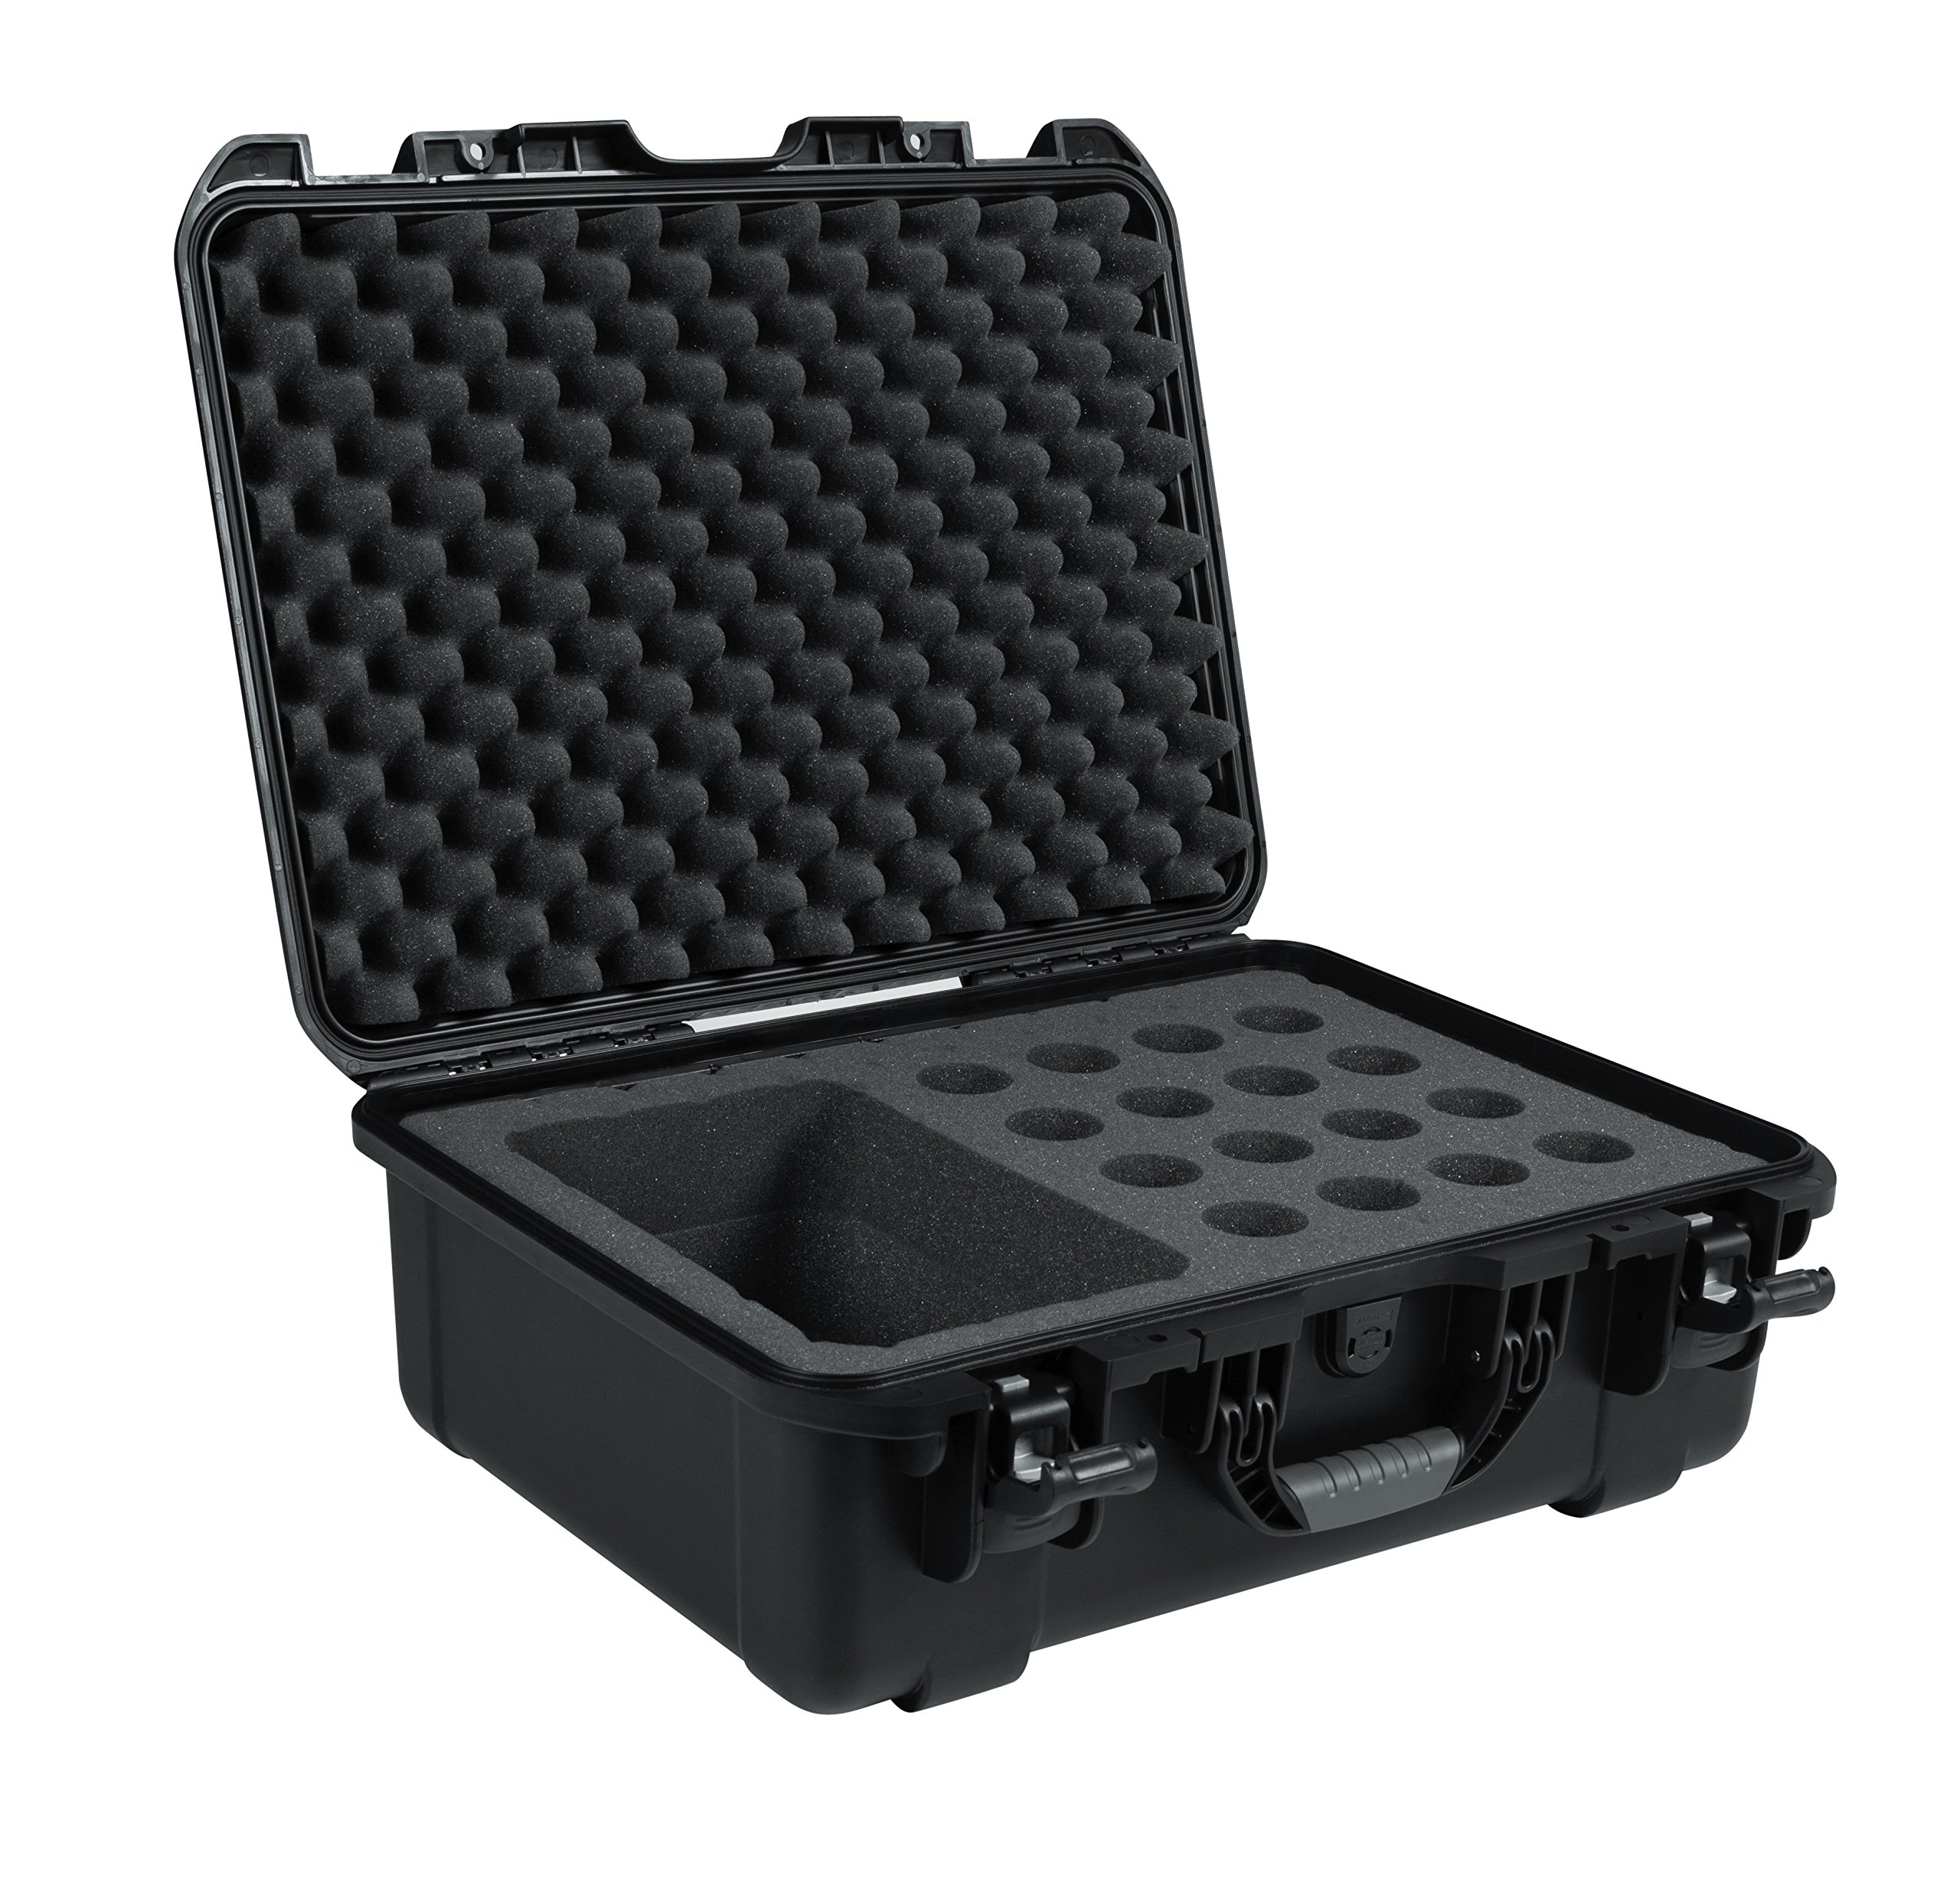 Gator Cases Titan Series Water Proof Injection Molded Microphone Case; Fits up to 16 Wired Mics and Accessories (GM-16-MIC-WP) by Gator